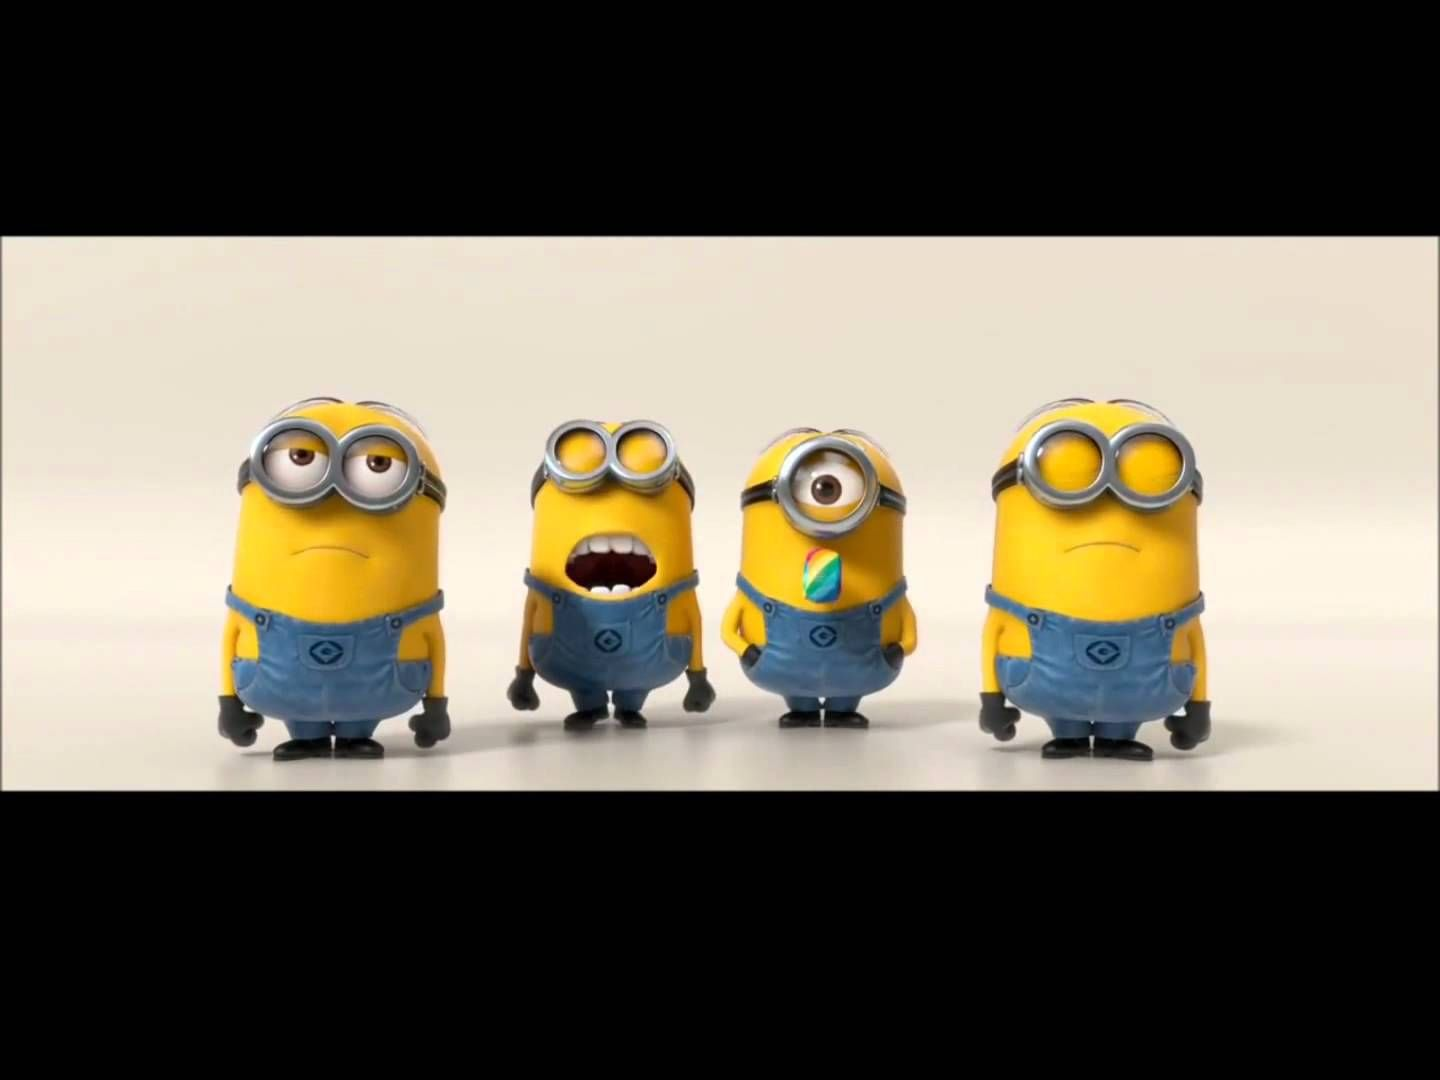 17 Best images about Minions on Pinterest | Laughing, Official ...